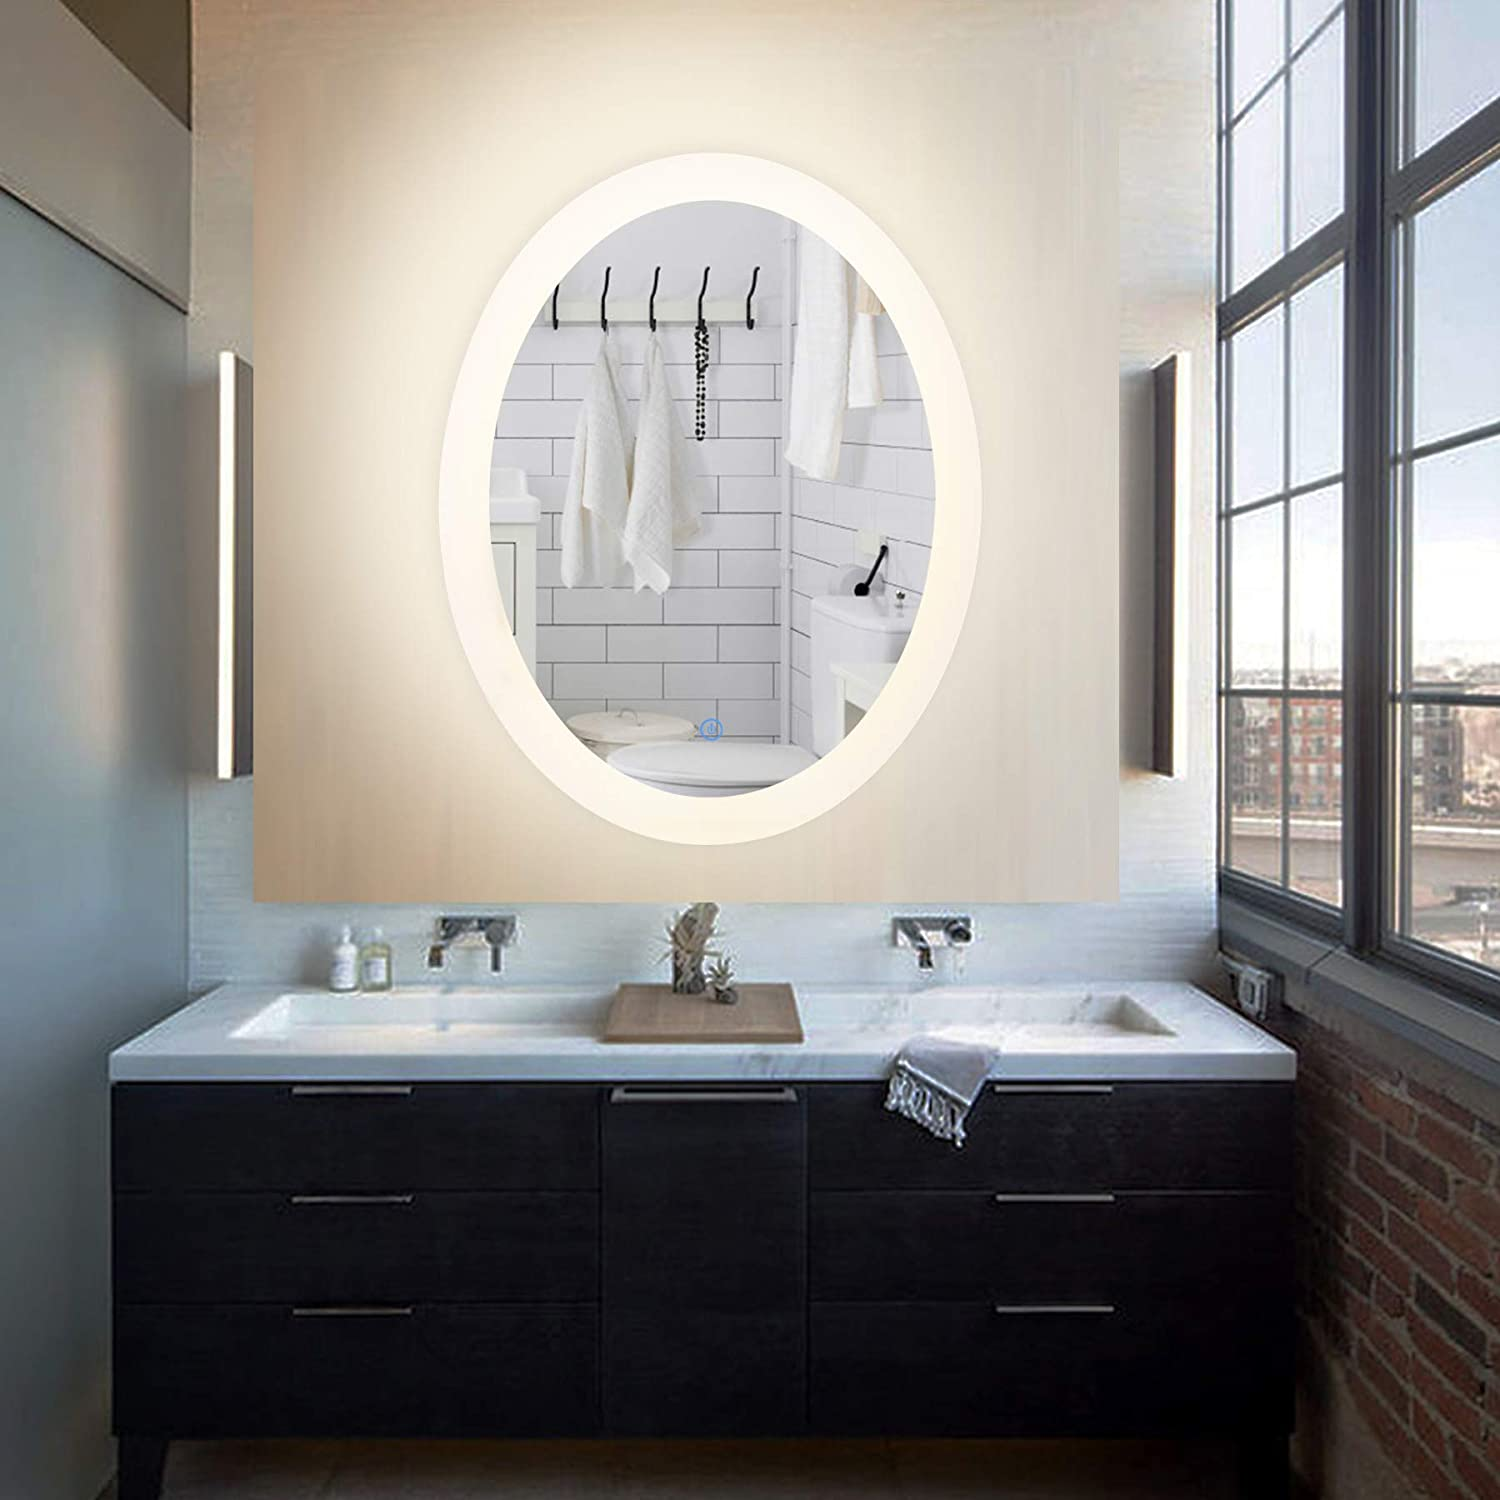 CO-Z Dimmable Backlit LED Bathroom Mirror, Plug-in Modern Oval Lighted Wall  Mounted Mirror with Lights&Dimmer, Contemporary Fogless Light Up Backlit  Touch ...